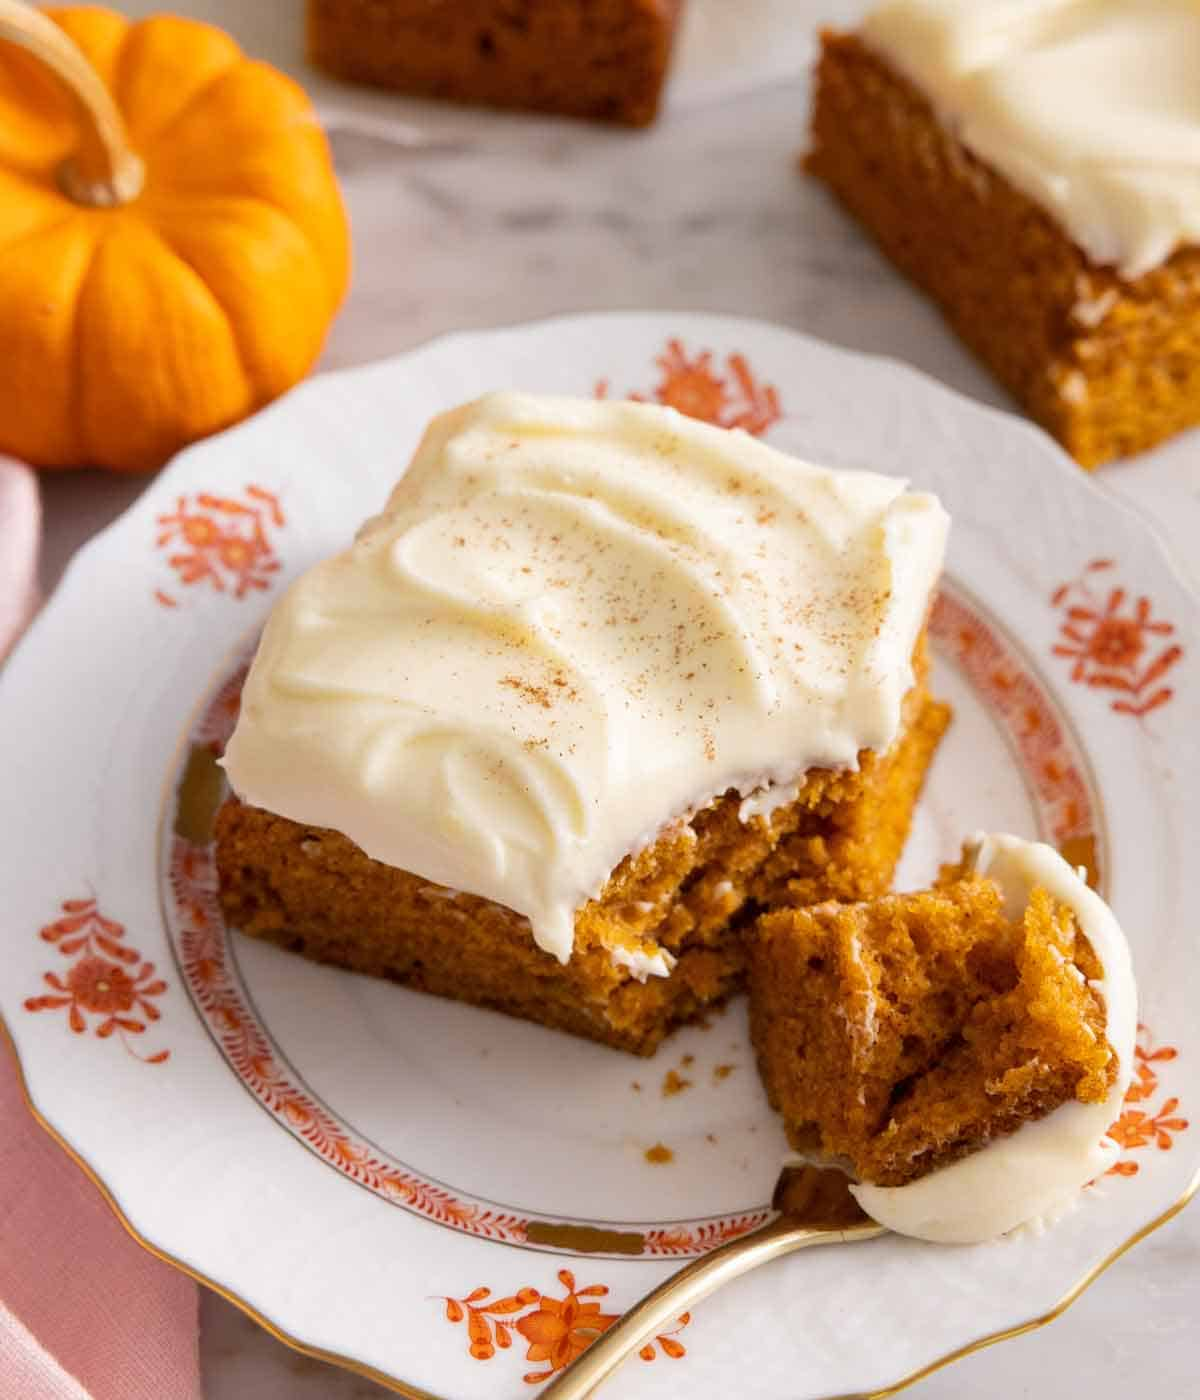 A square slice of pumpkin cake with a piece on a fork.